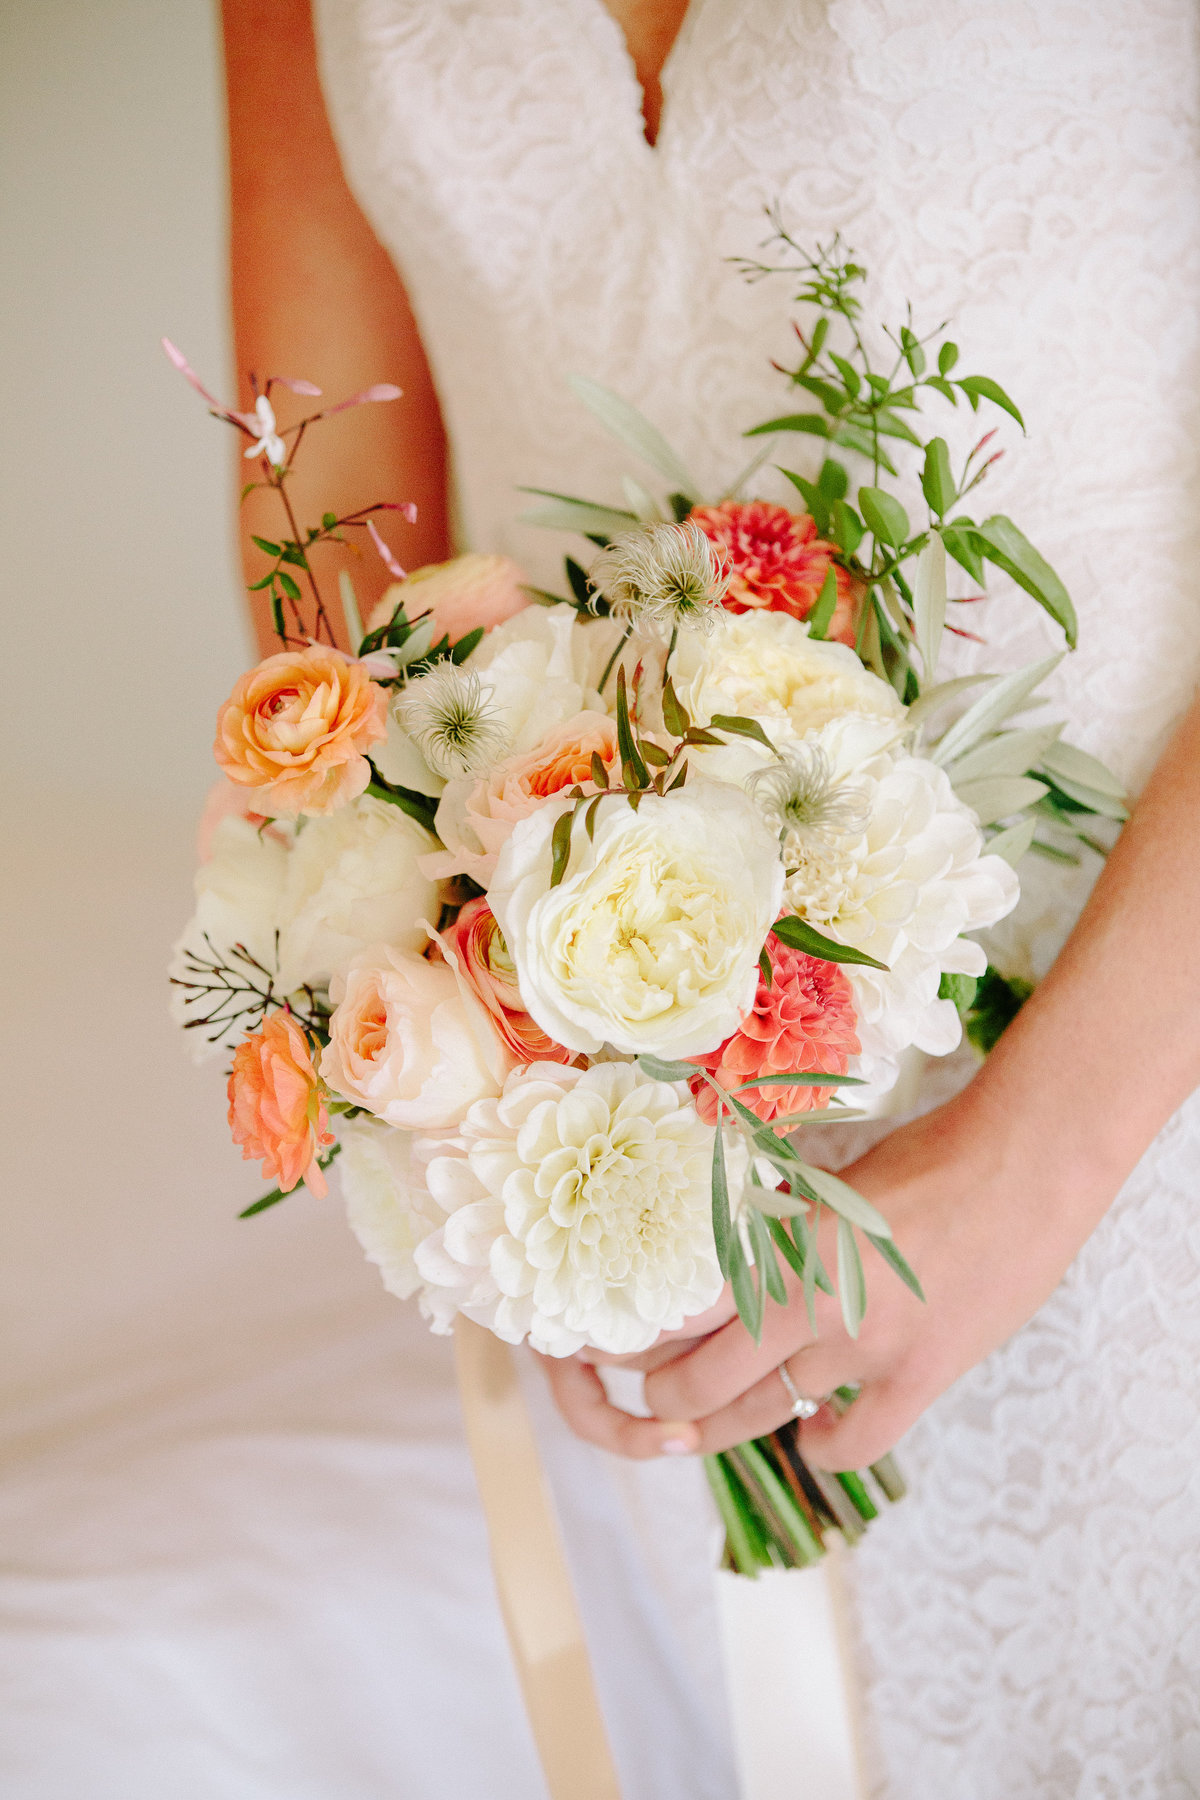 Peach and white bridal bouquet for a wedding at Beltane Ranch in Sonoma.